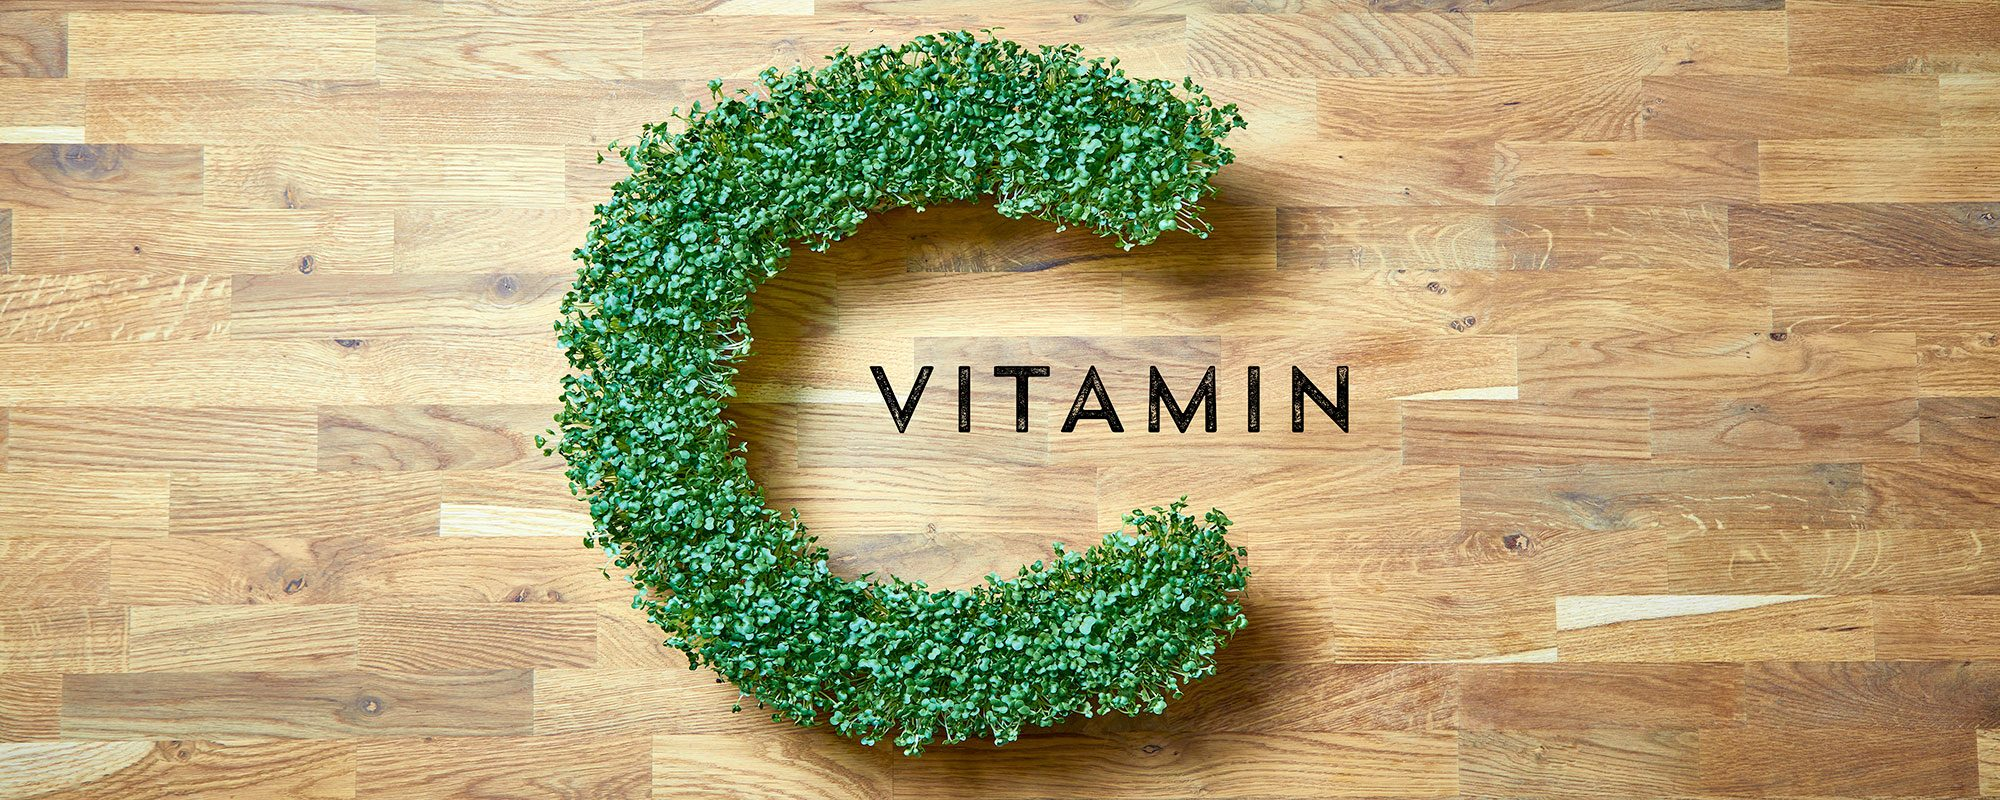 Vitamin C in salad cress